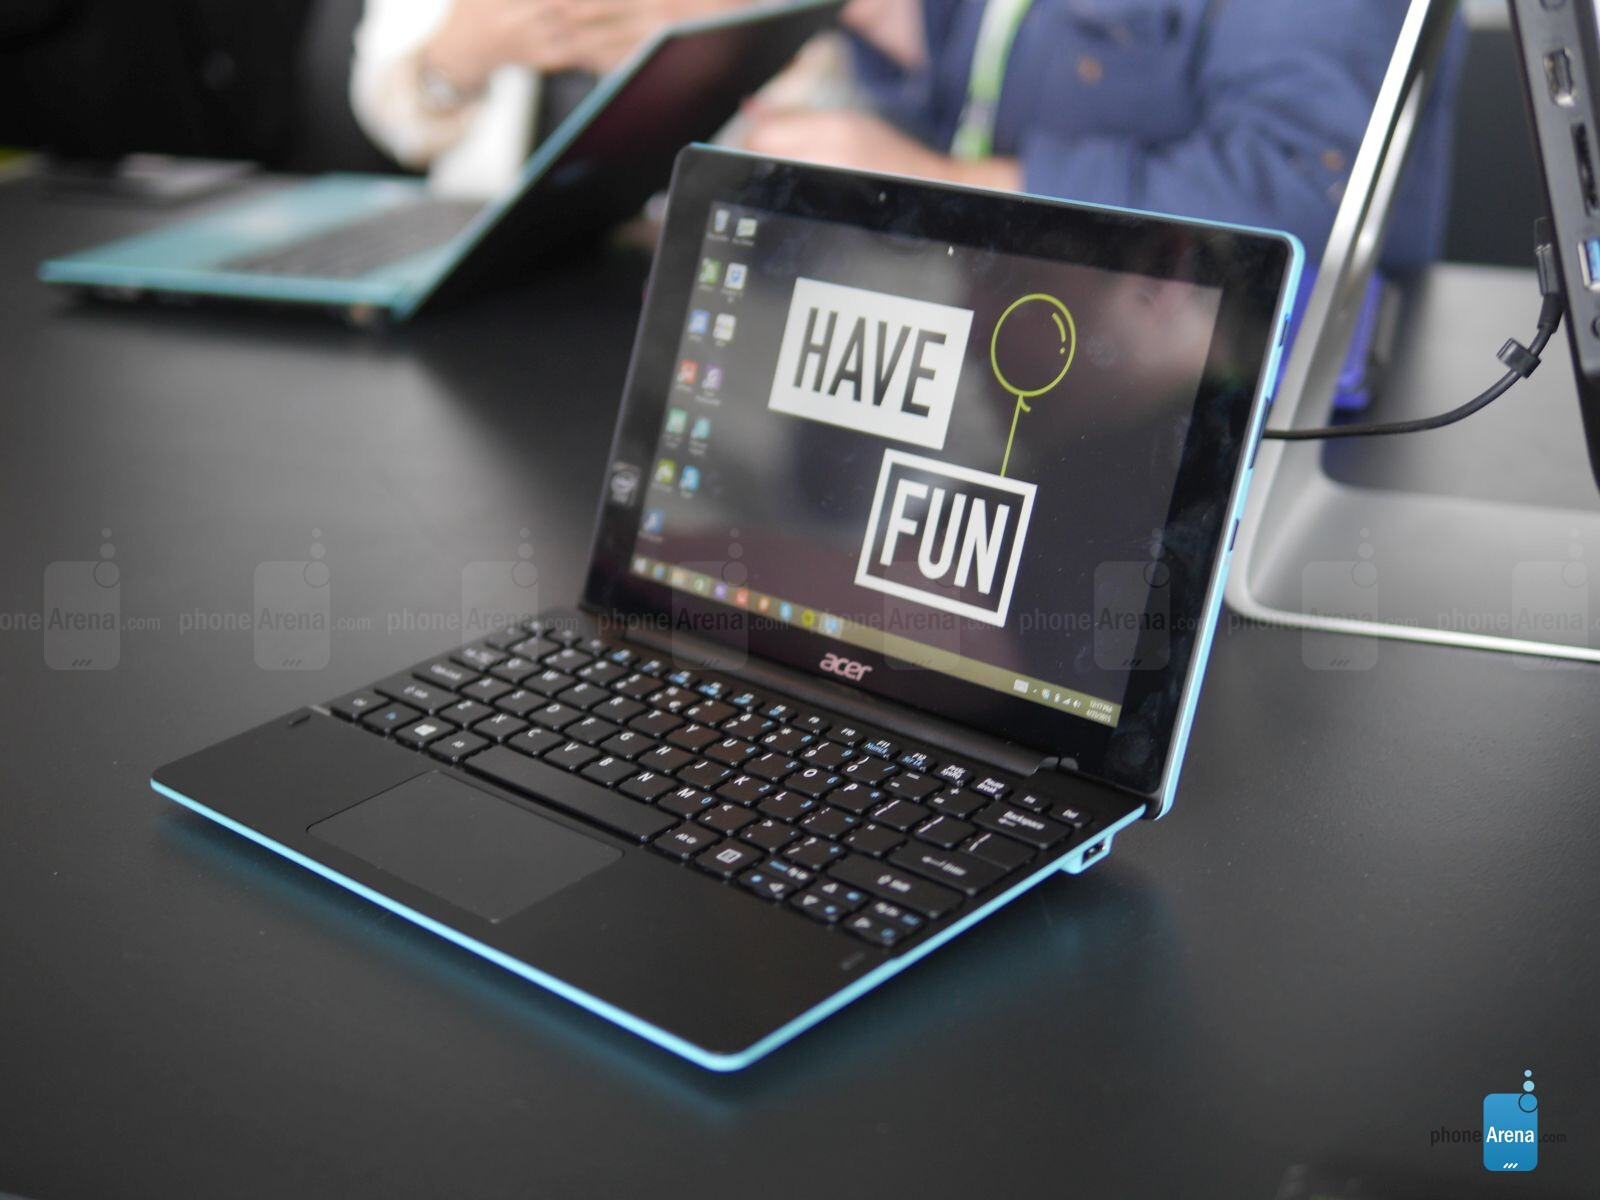 acer aspire switch 10 e hands on phonearena reviews. Black Bedroom Furniture Sets. Home Design Ideas